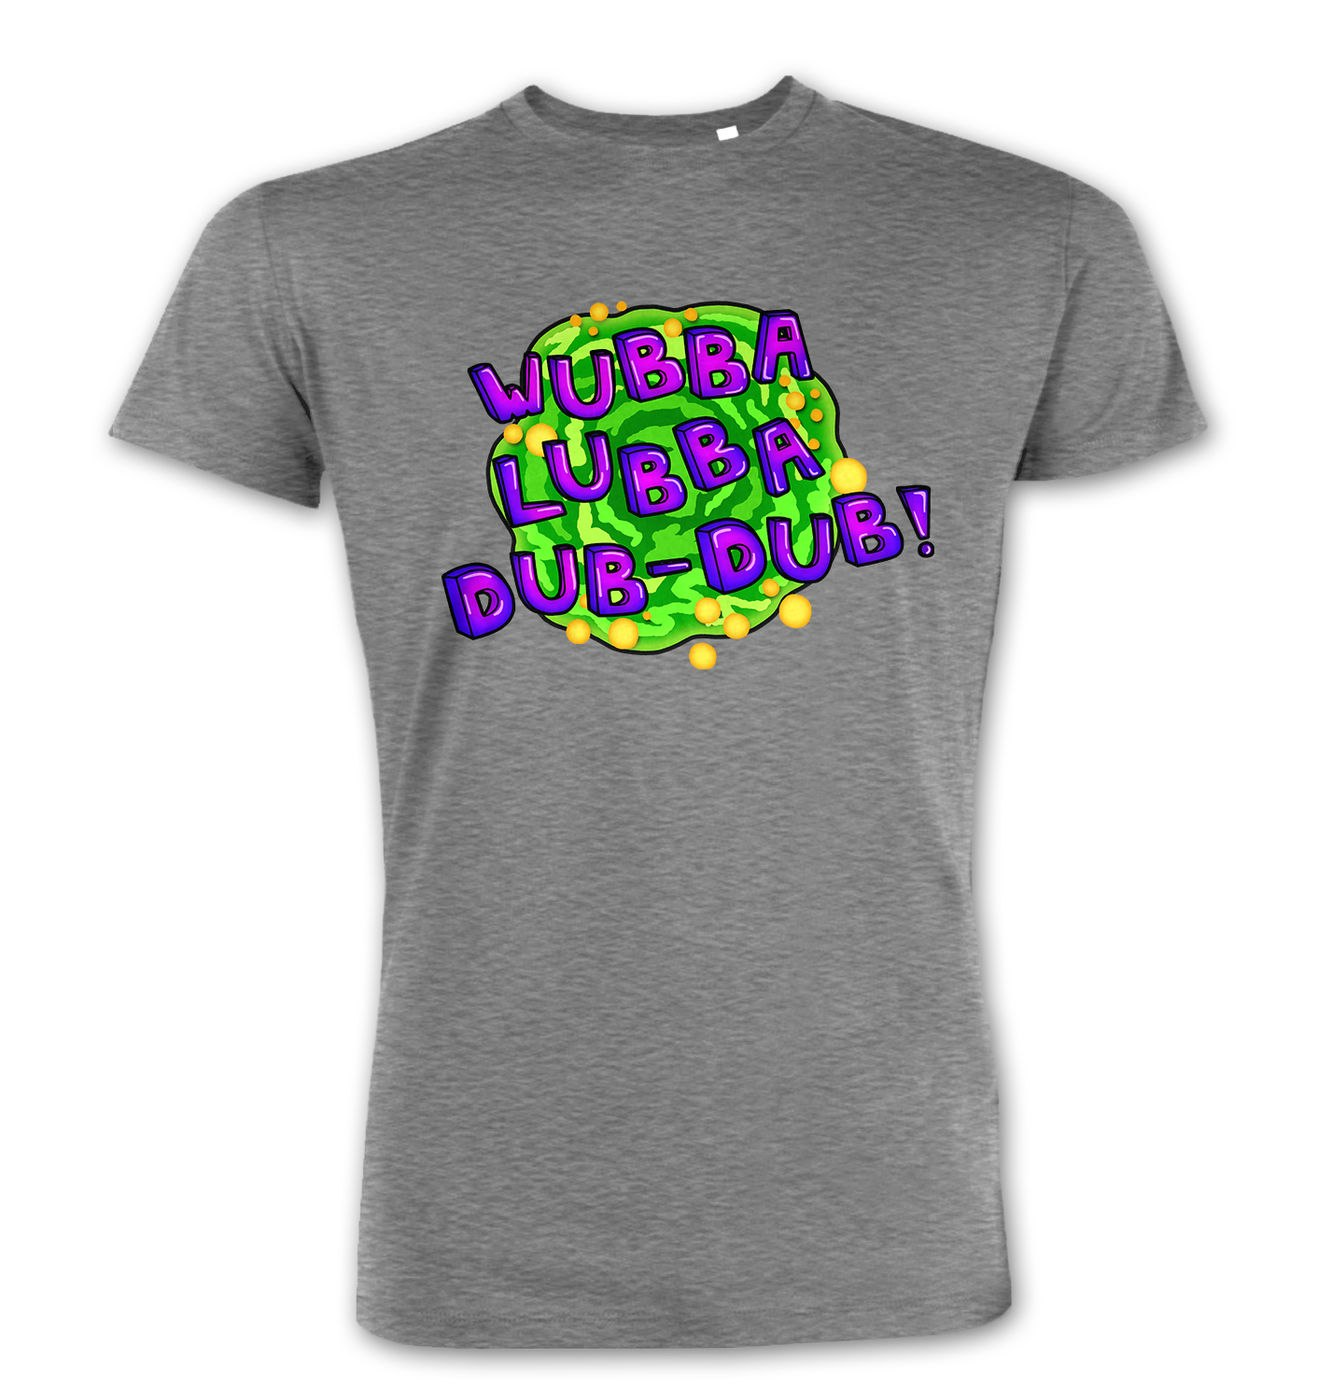 Wubba Lubba premium t-shirt by Something Geeky